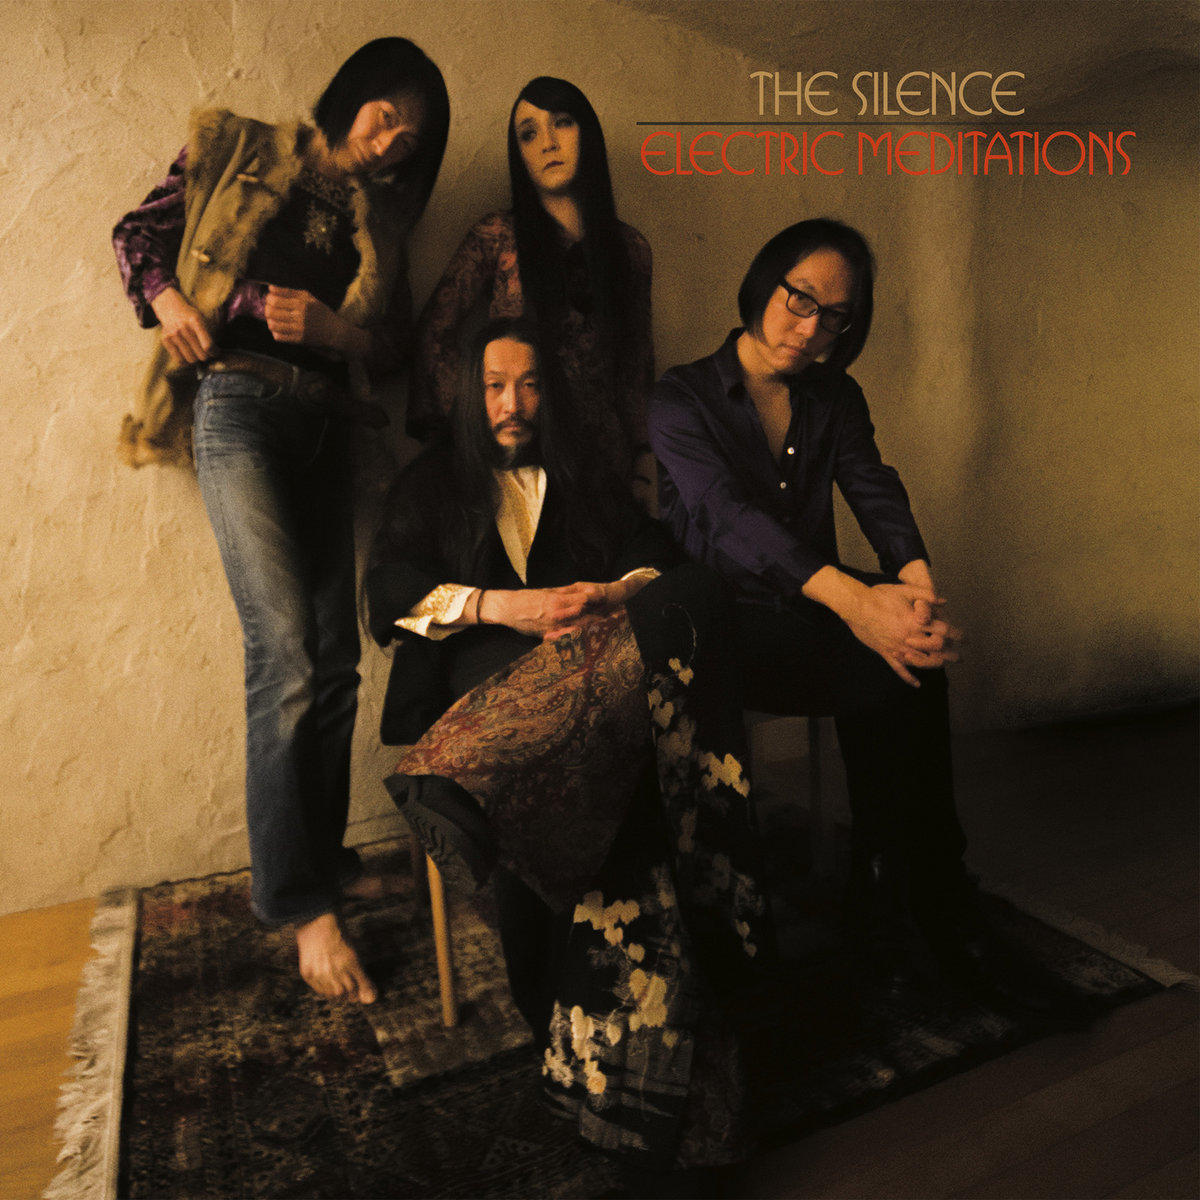 Reseña: THE SILENCE.- 'Electric Meditations'